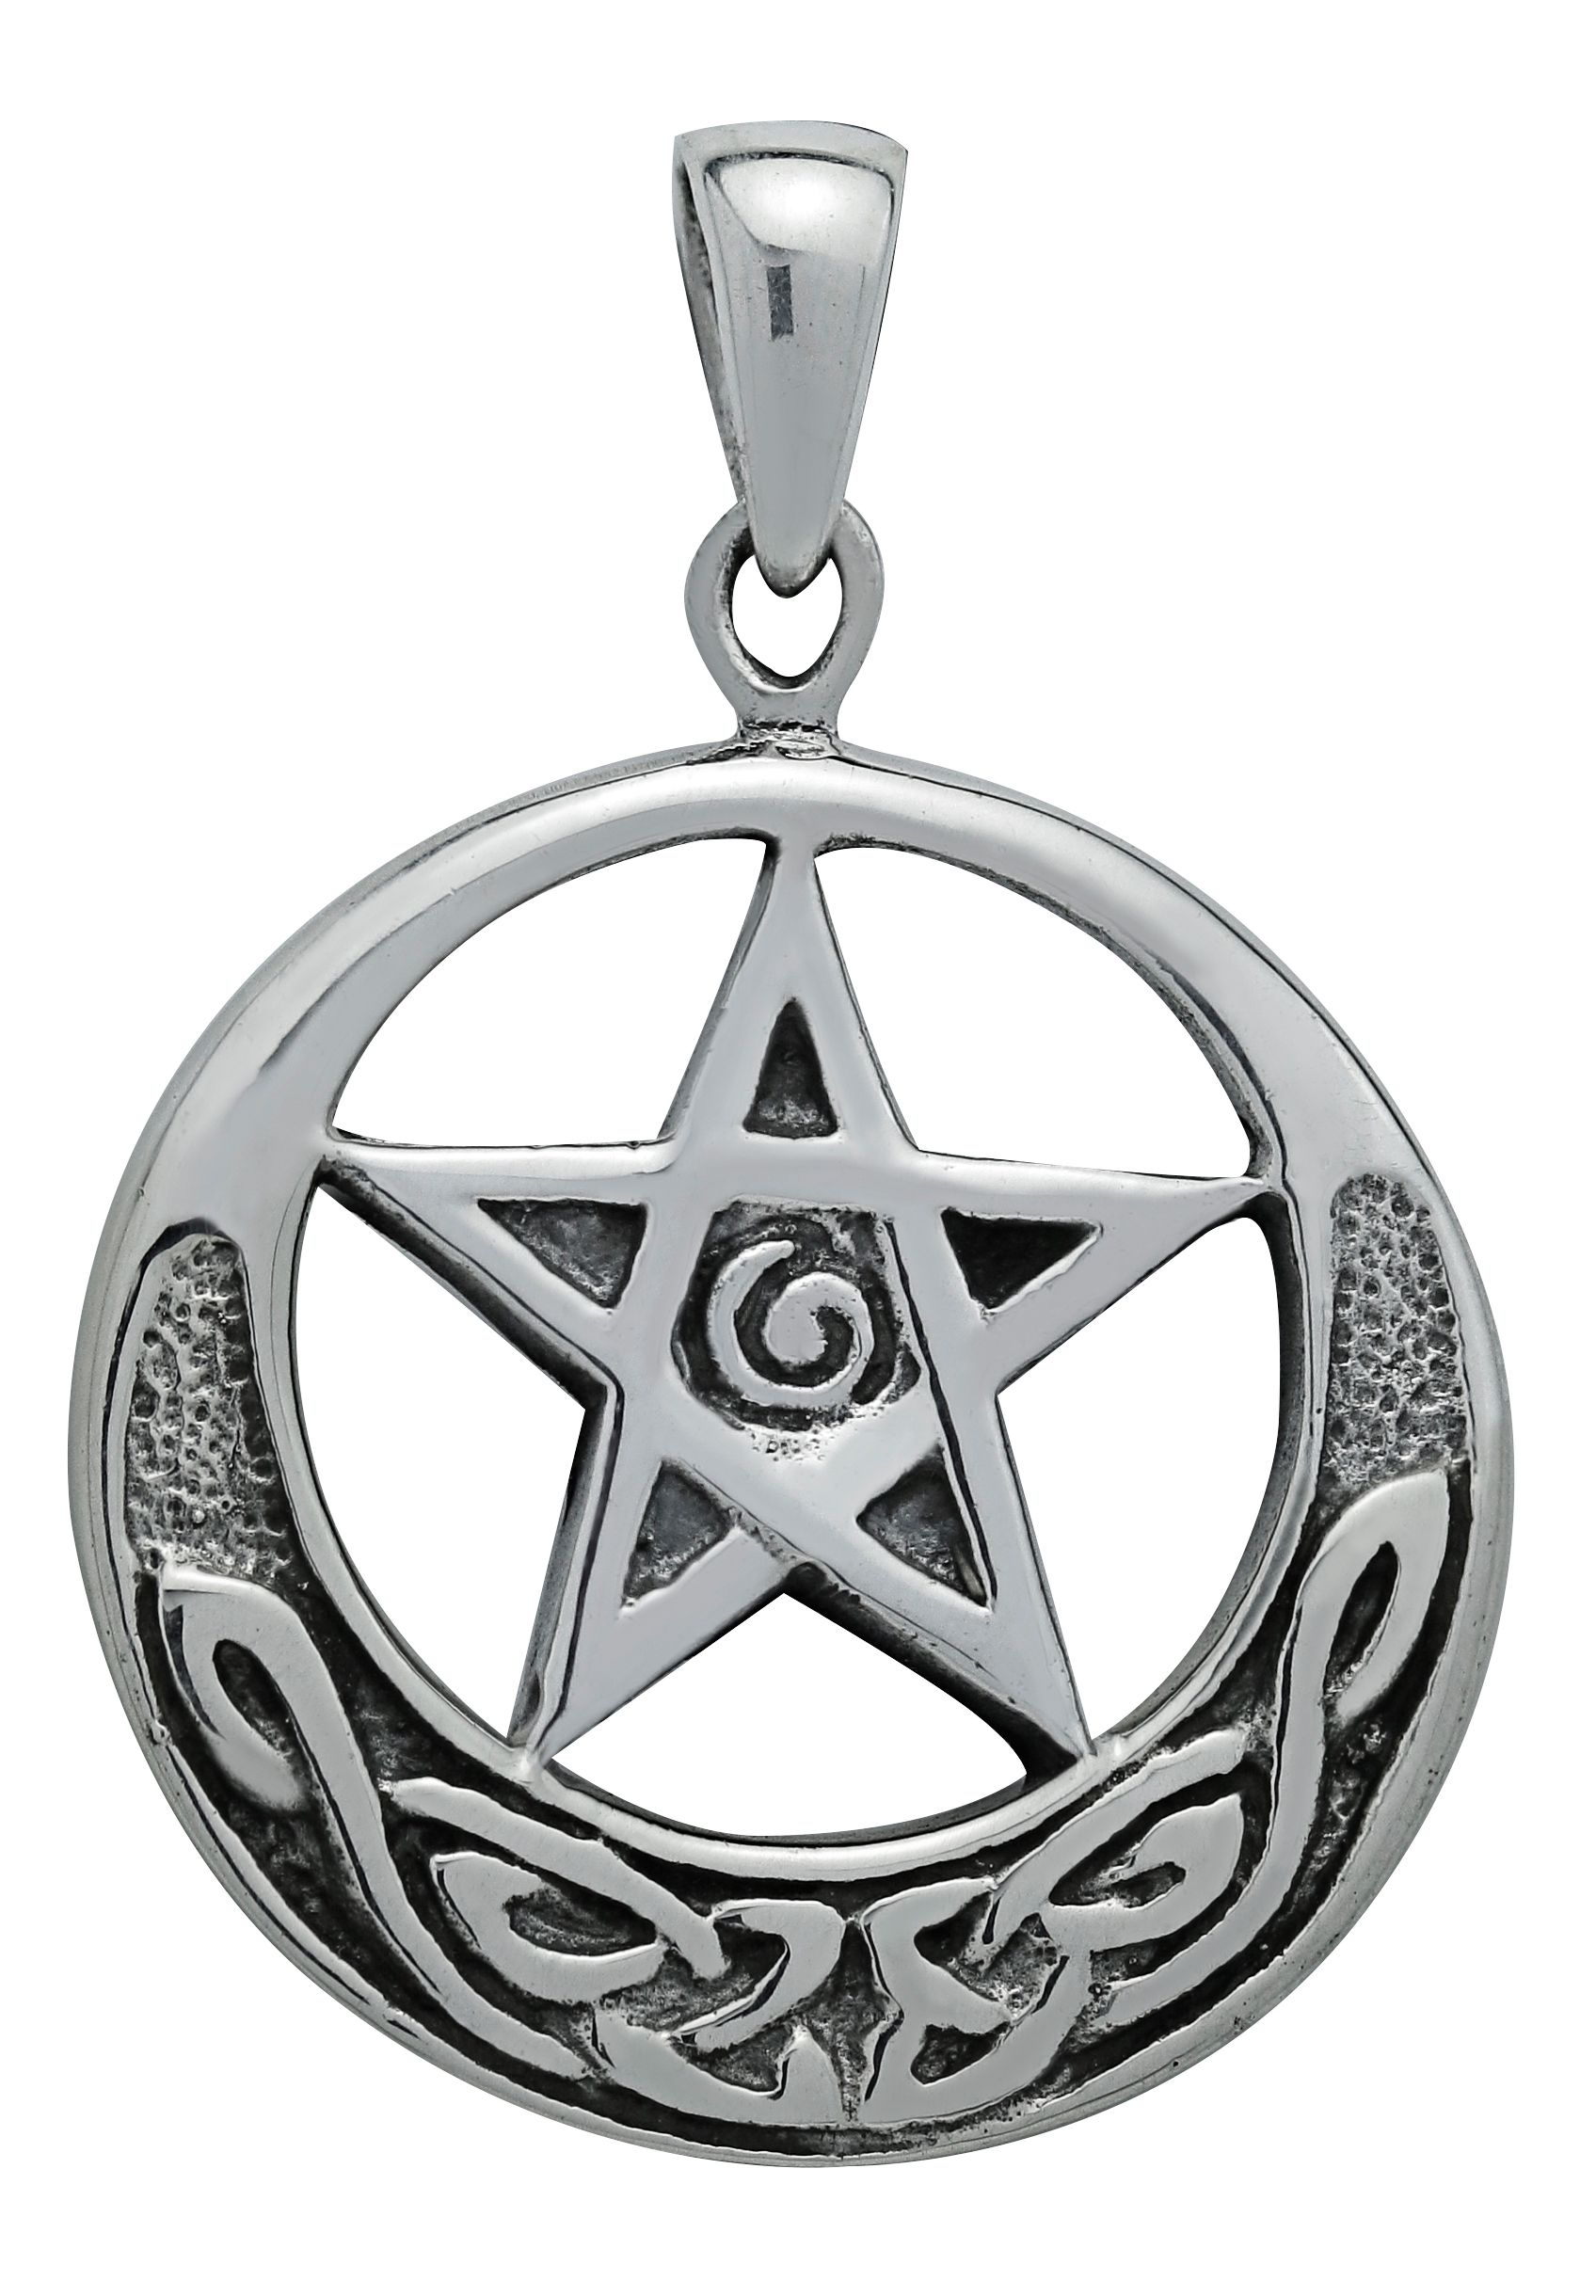 triple vcmm moons of the hecate sam goddess index pendant pewter